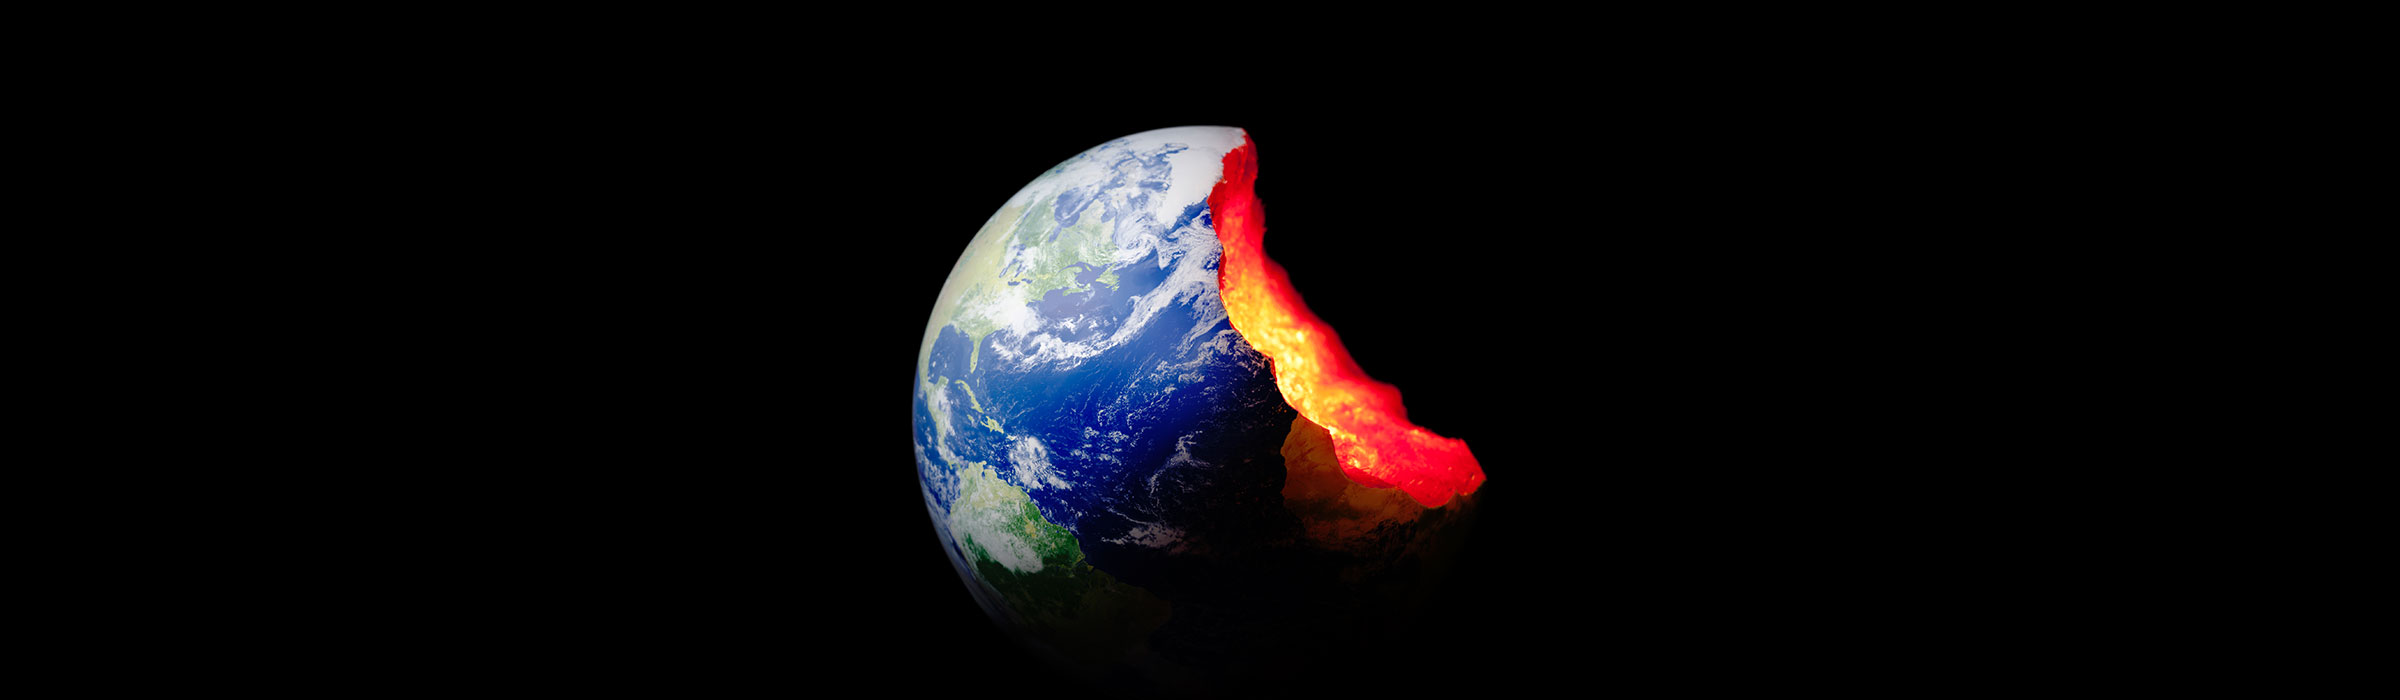 The Earth in front of a black background, with part of it missing to show the molten rock deep inside.